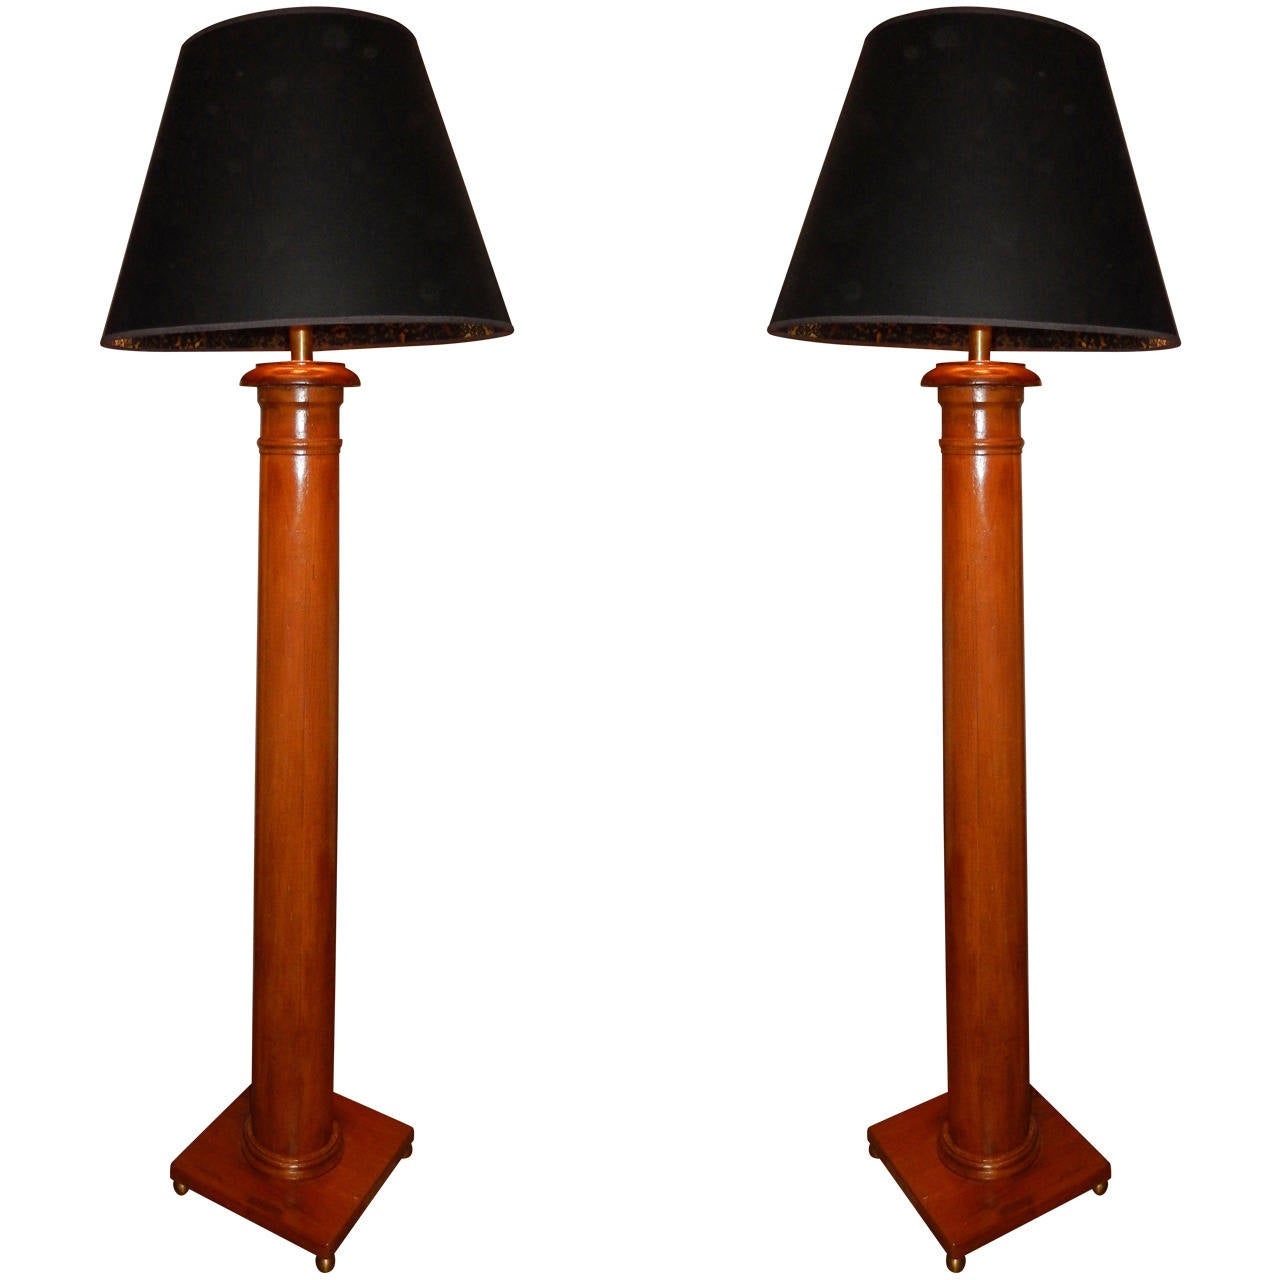 Tall Floor Lamps